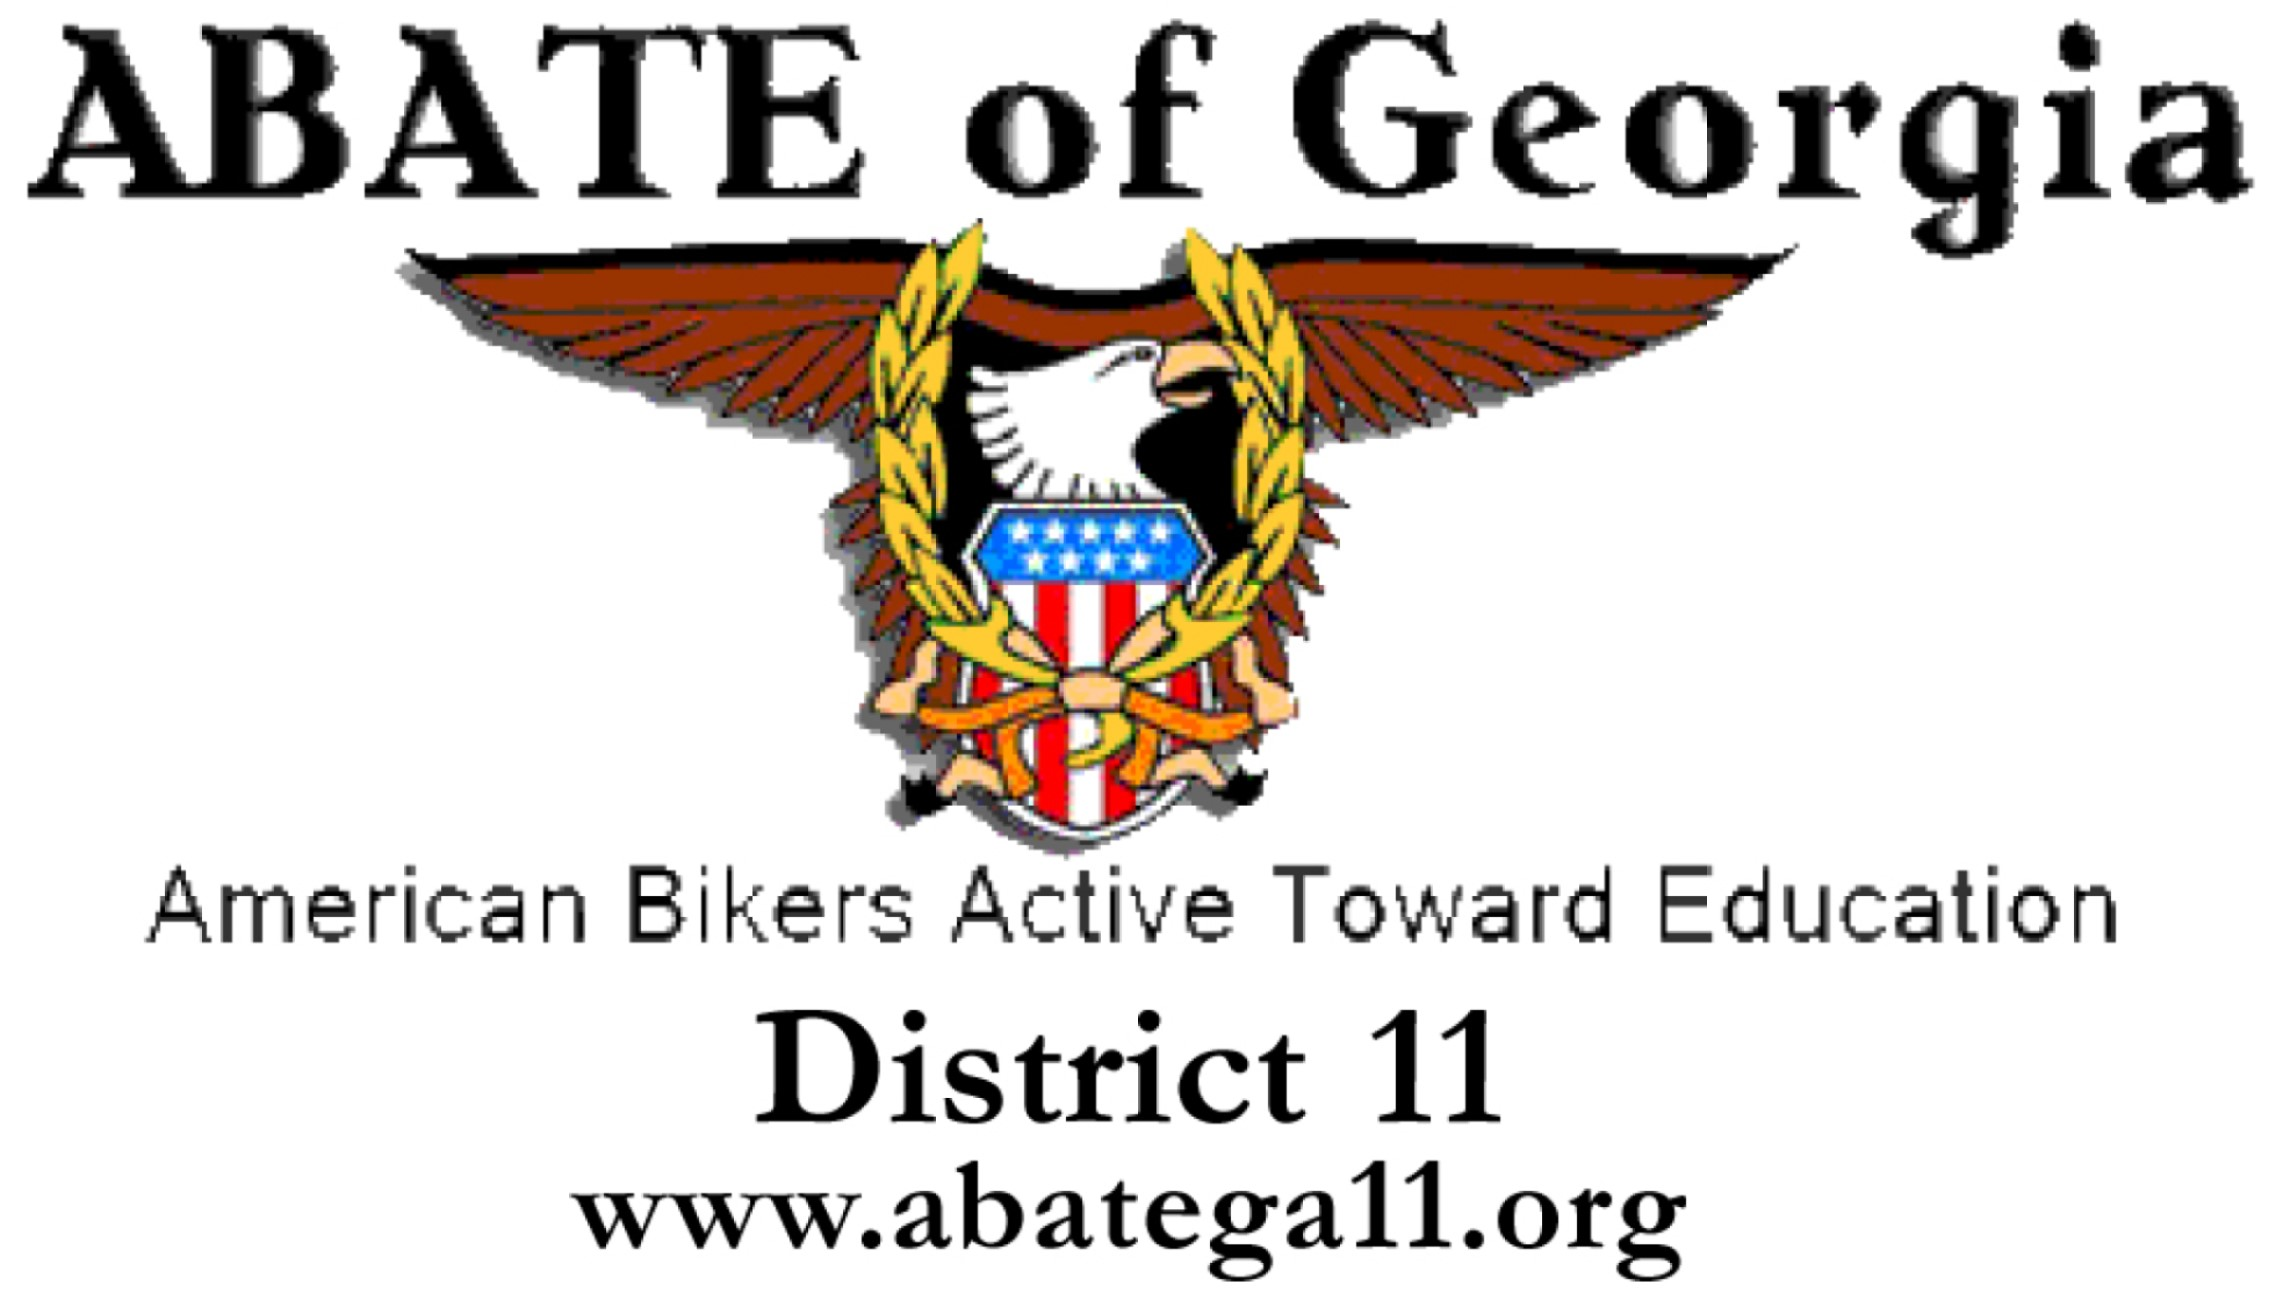 ABATE of Georgia, District 11 Monthly Meeting @ VFW Post 660 | Savannah | Georgia | United States